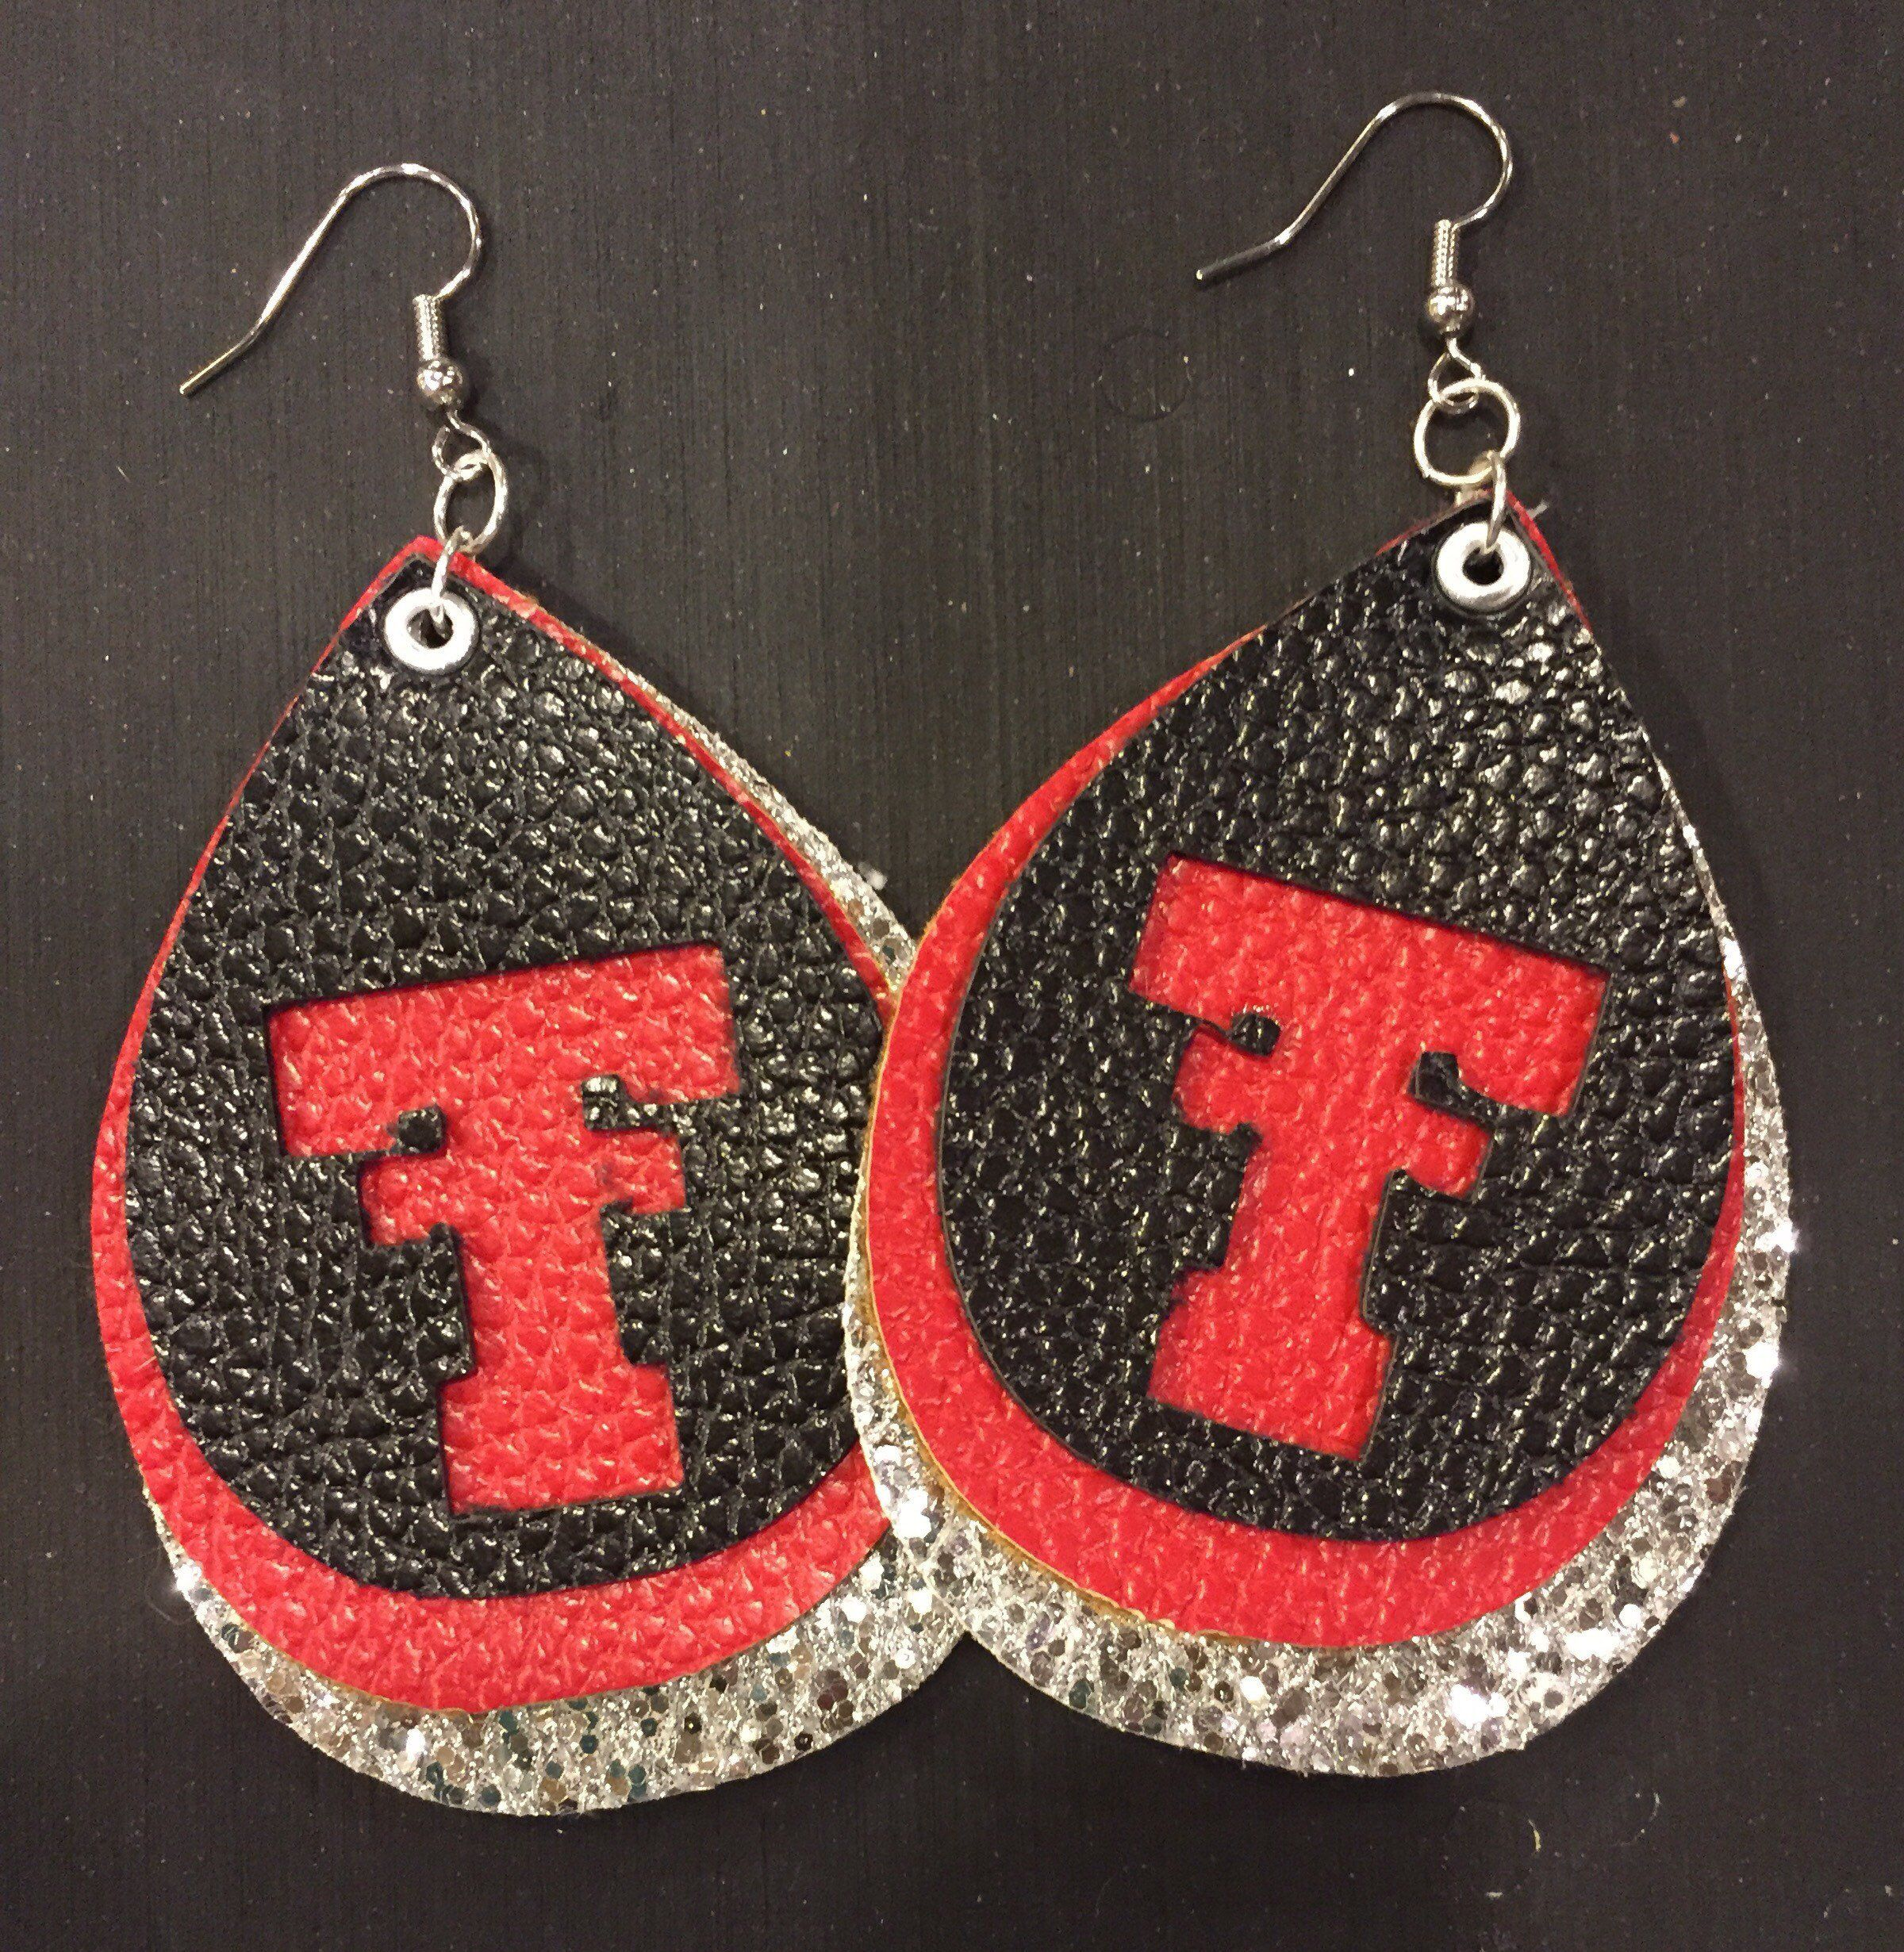 Texas Tech Jewelry Diamontrigue Jewelry: Texas Tech Layered Teardrop Earrings; Faux Leather Red